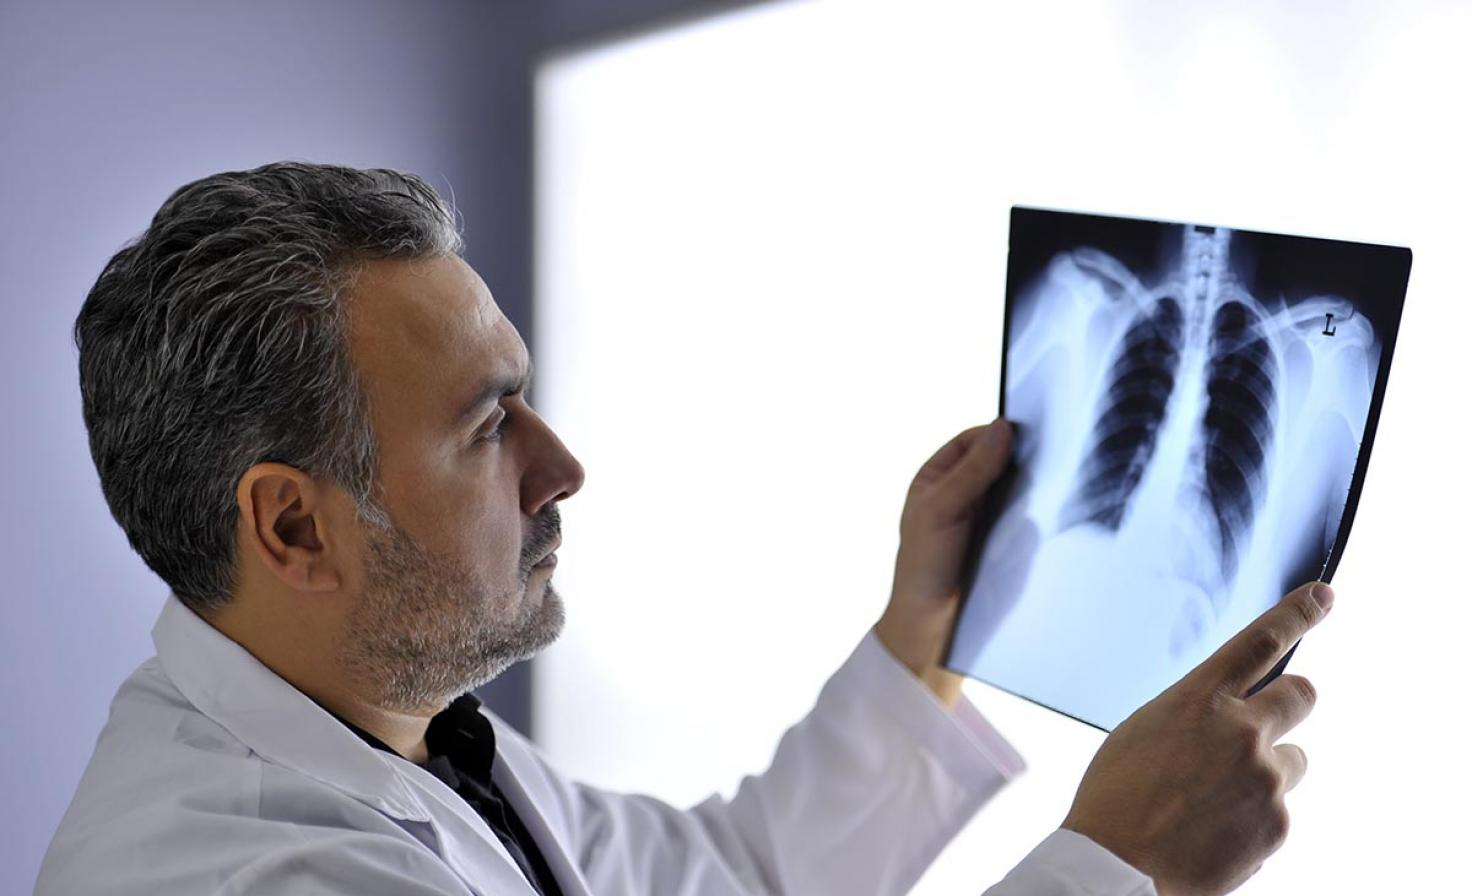 Male doctor assessing x-ray results